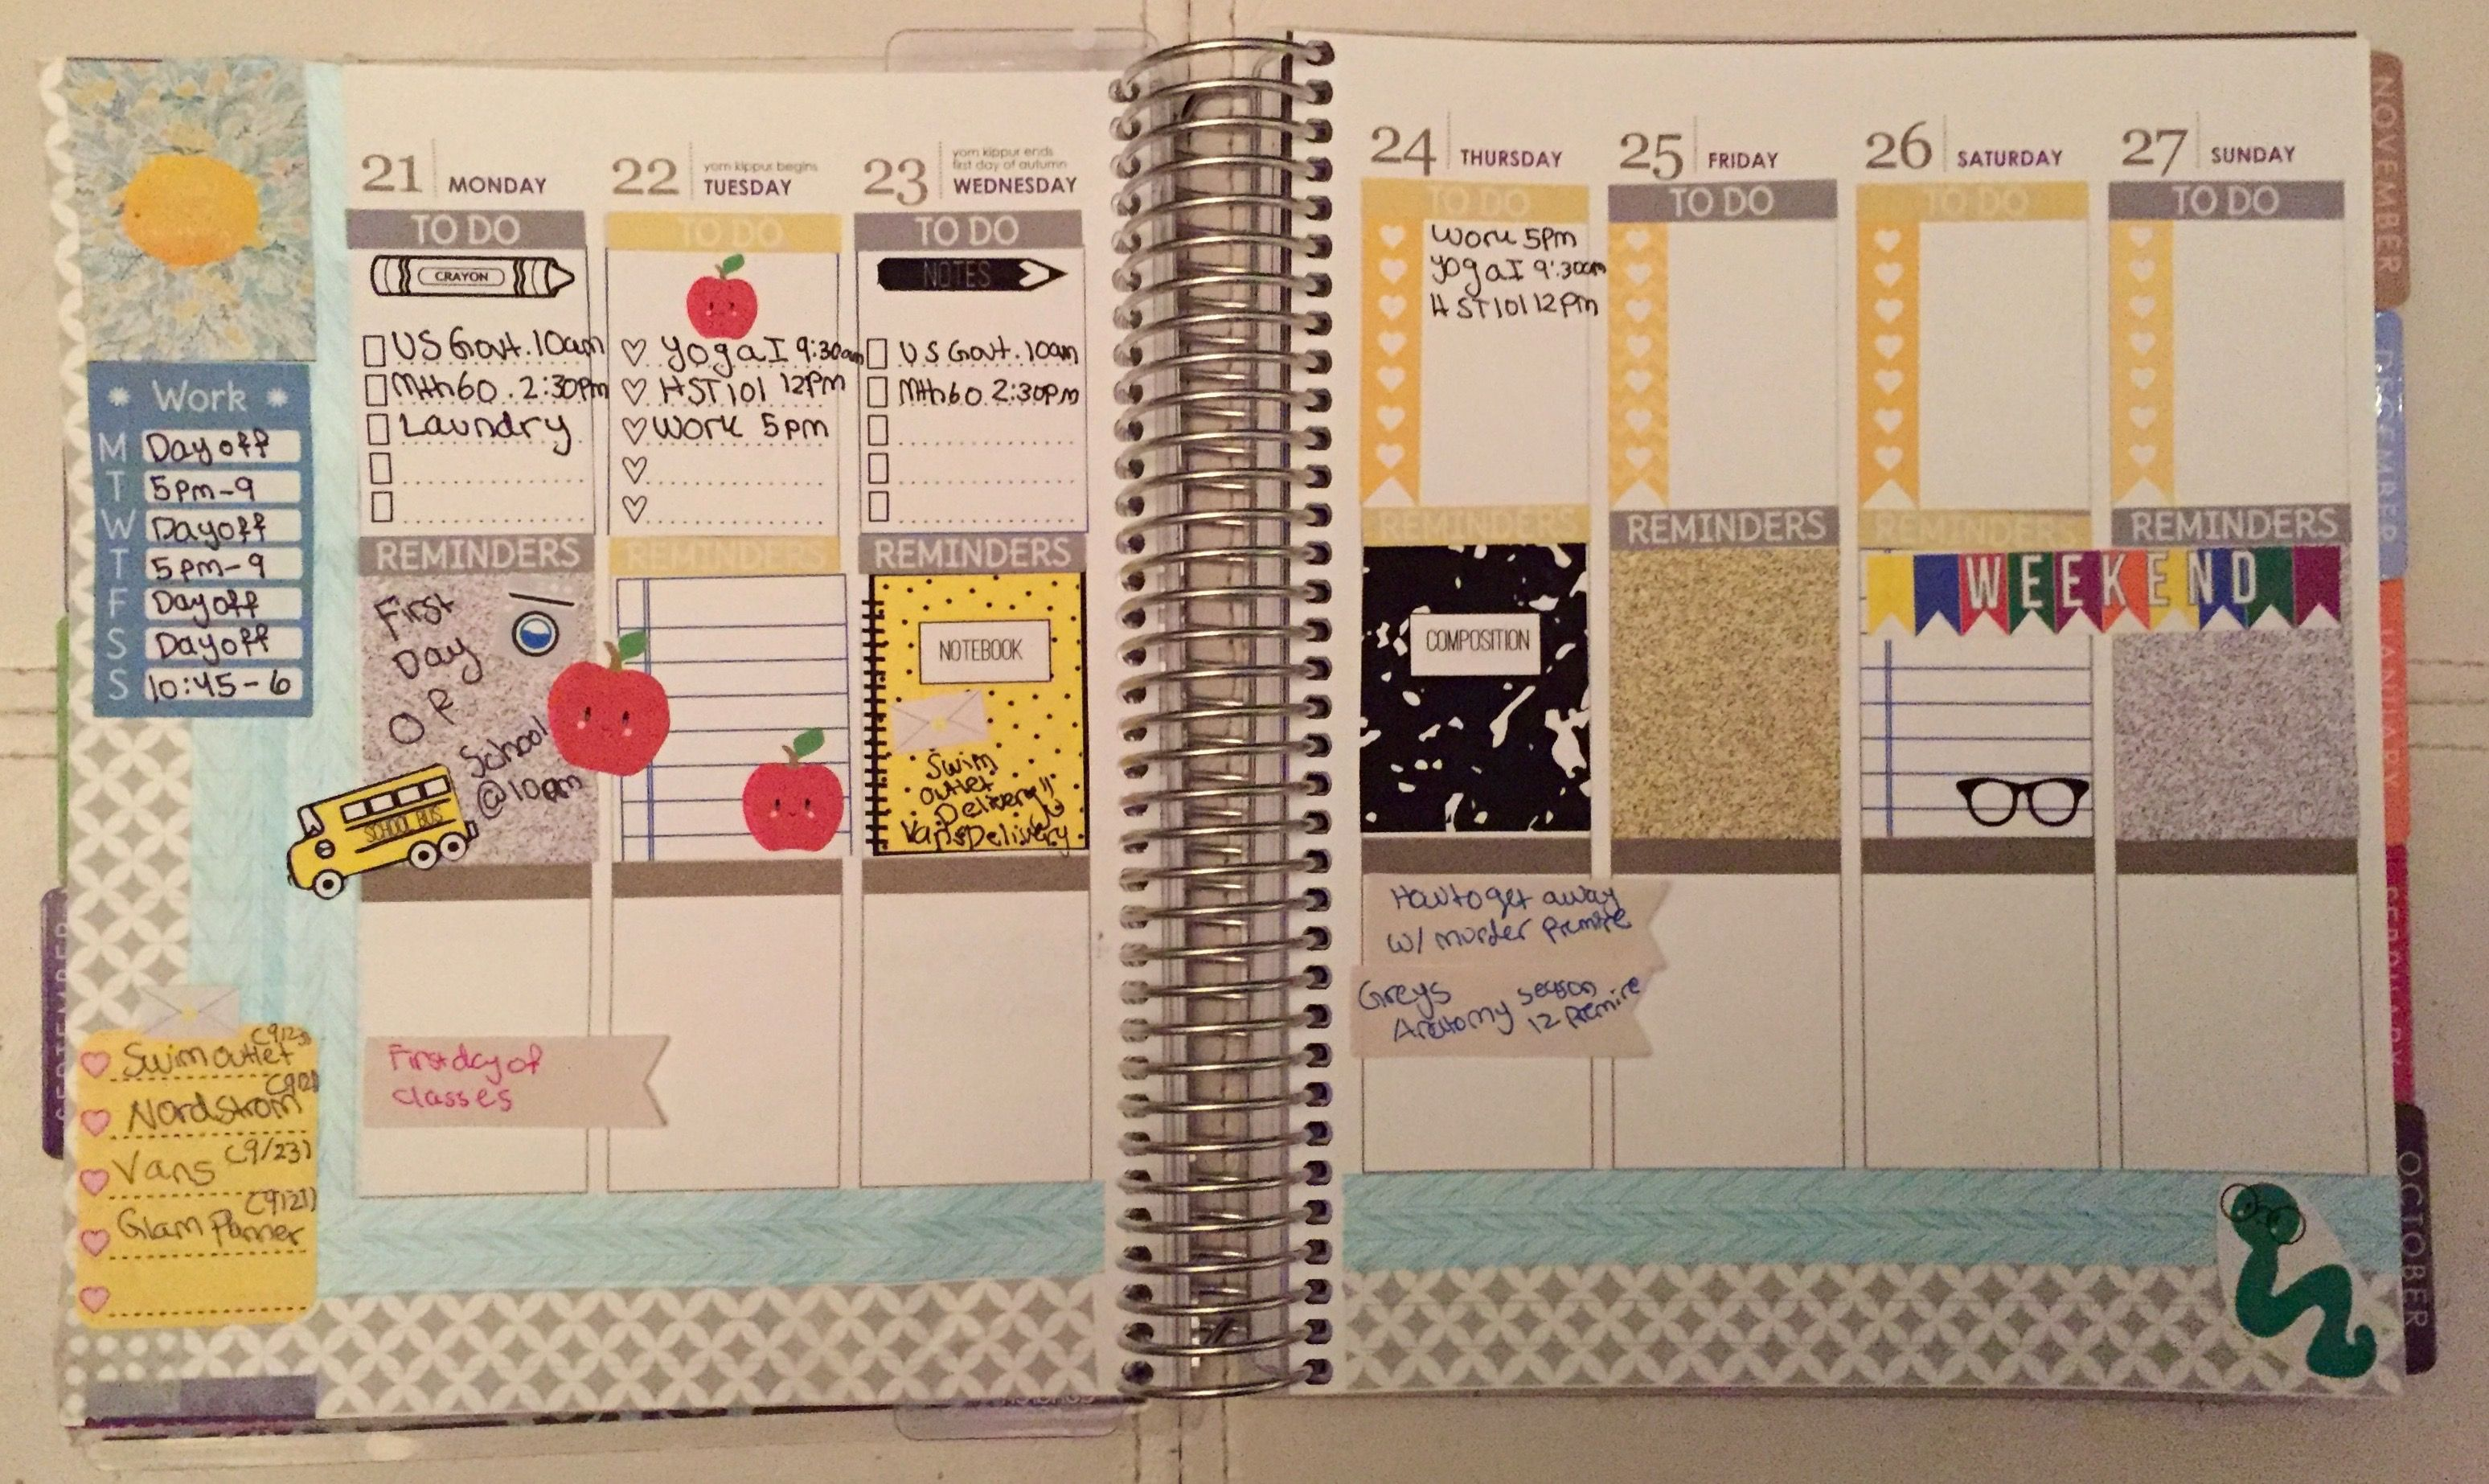 Planner and Lifestyle/Organization Blog http://birkenstocksandstickers.blogspot.com/2015/09/planner-sneak-peek-921-927.html